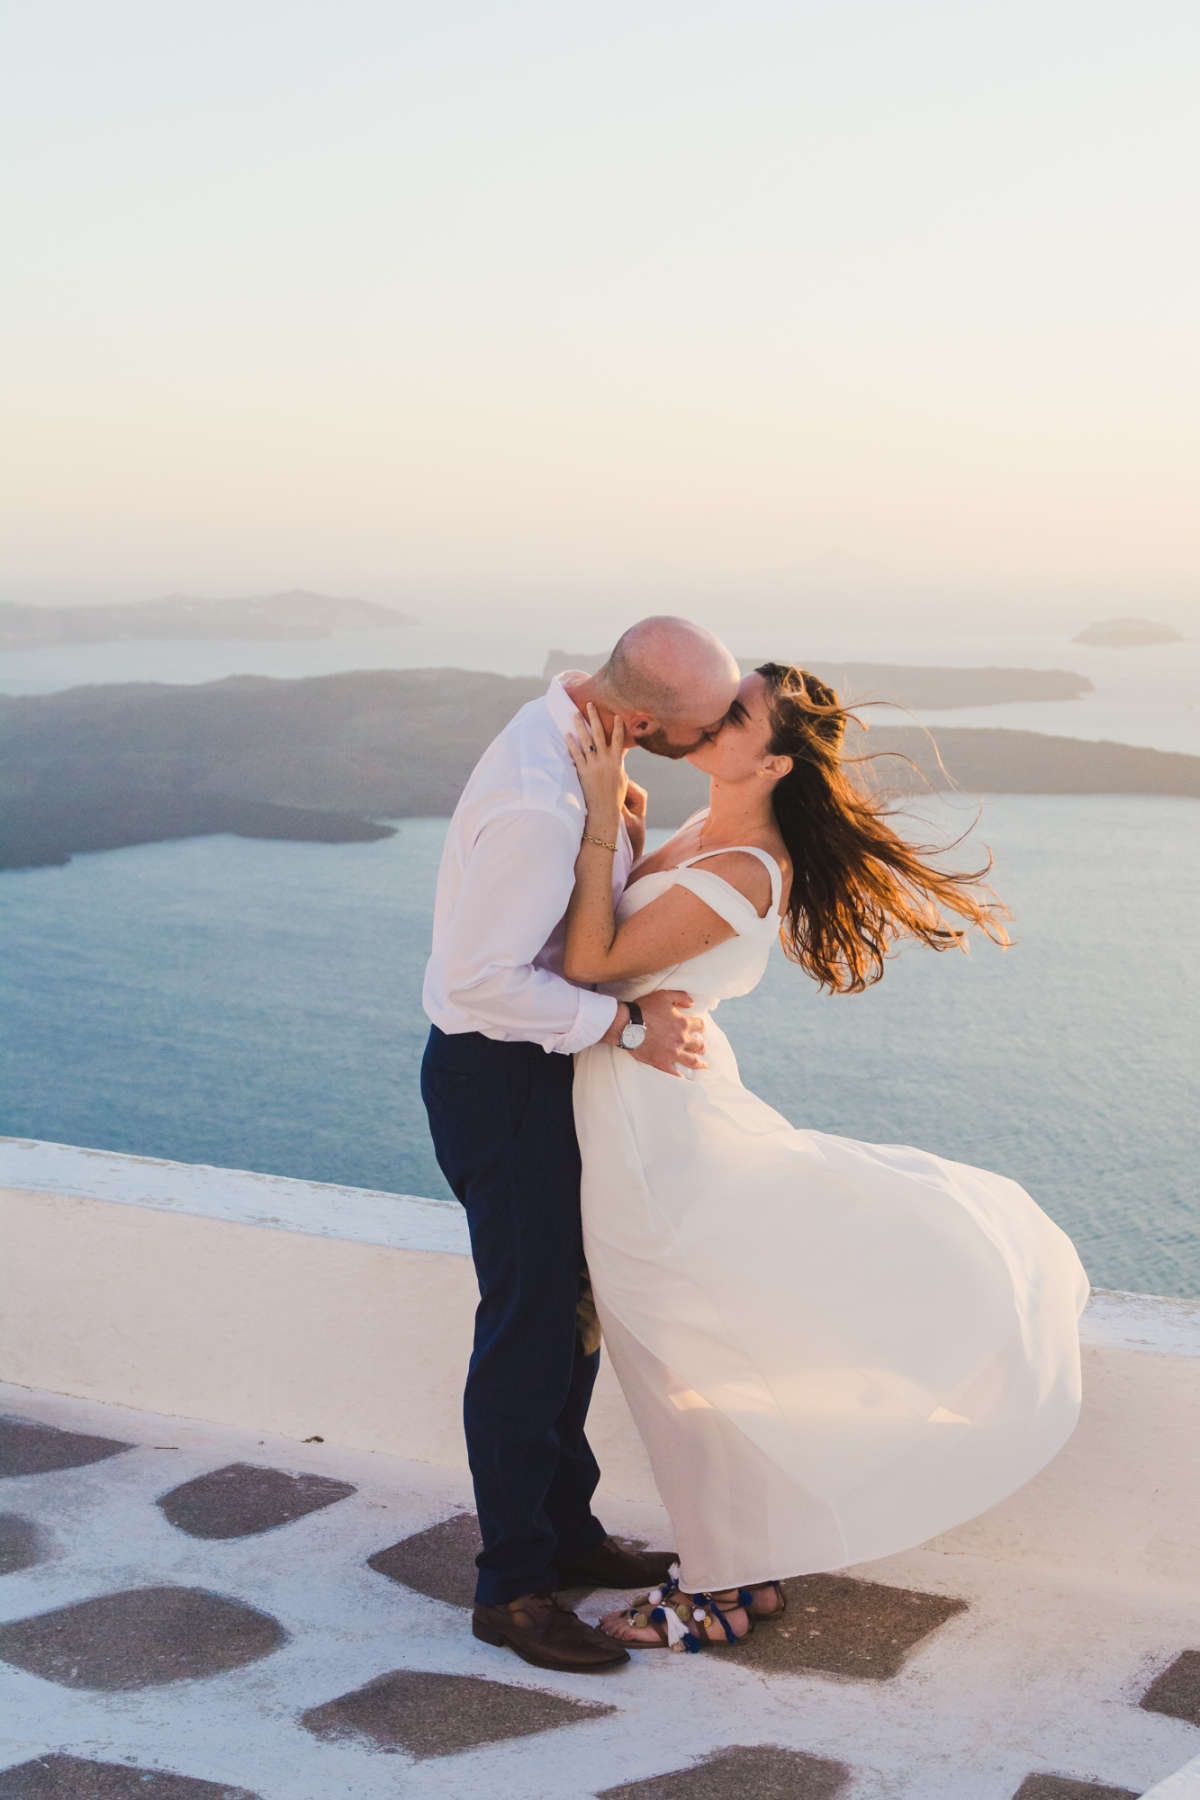 santorini-photographer-post-wedding-prewedding-photo-shoot-session-vow-exchange-006